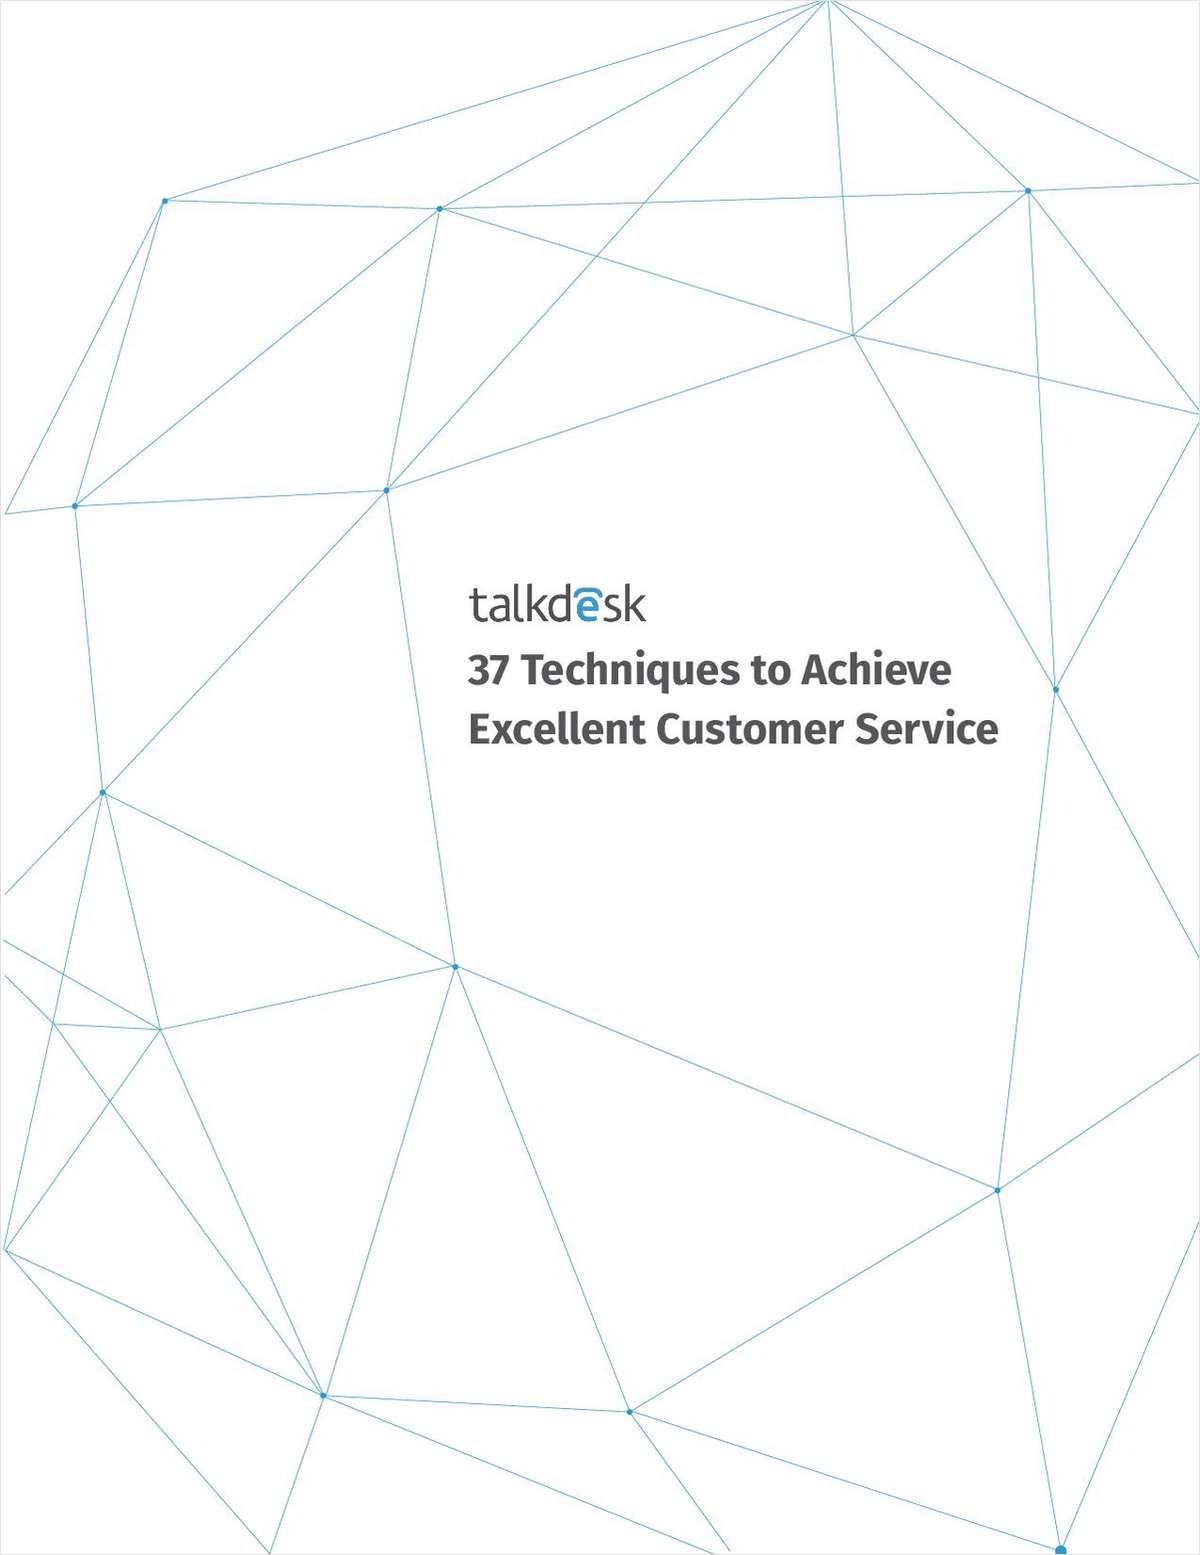 37 Techniques to Achieve Excellent Customer Service